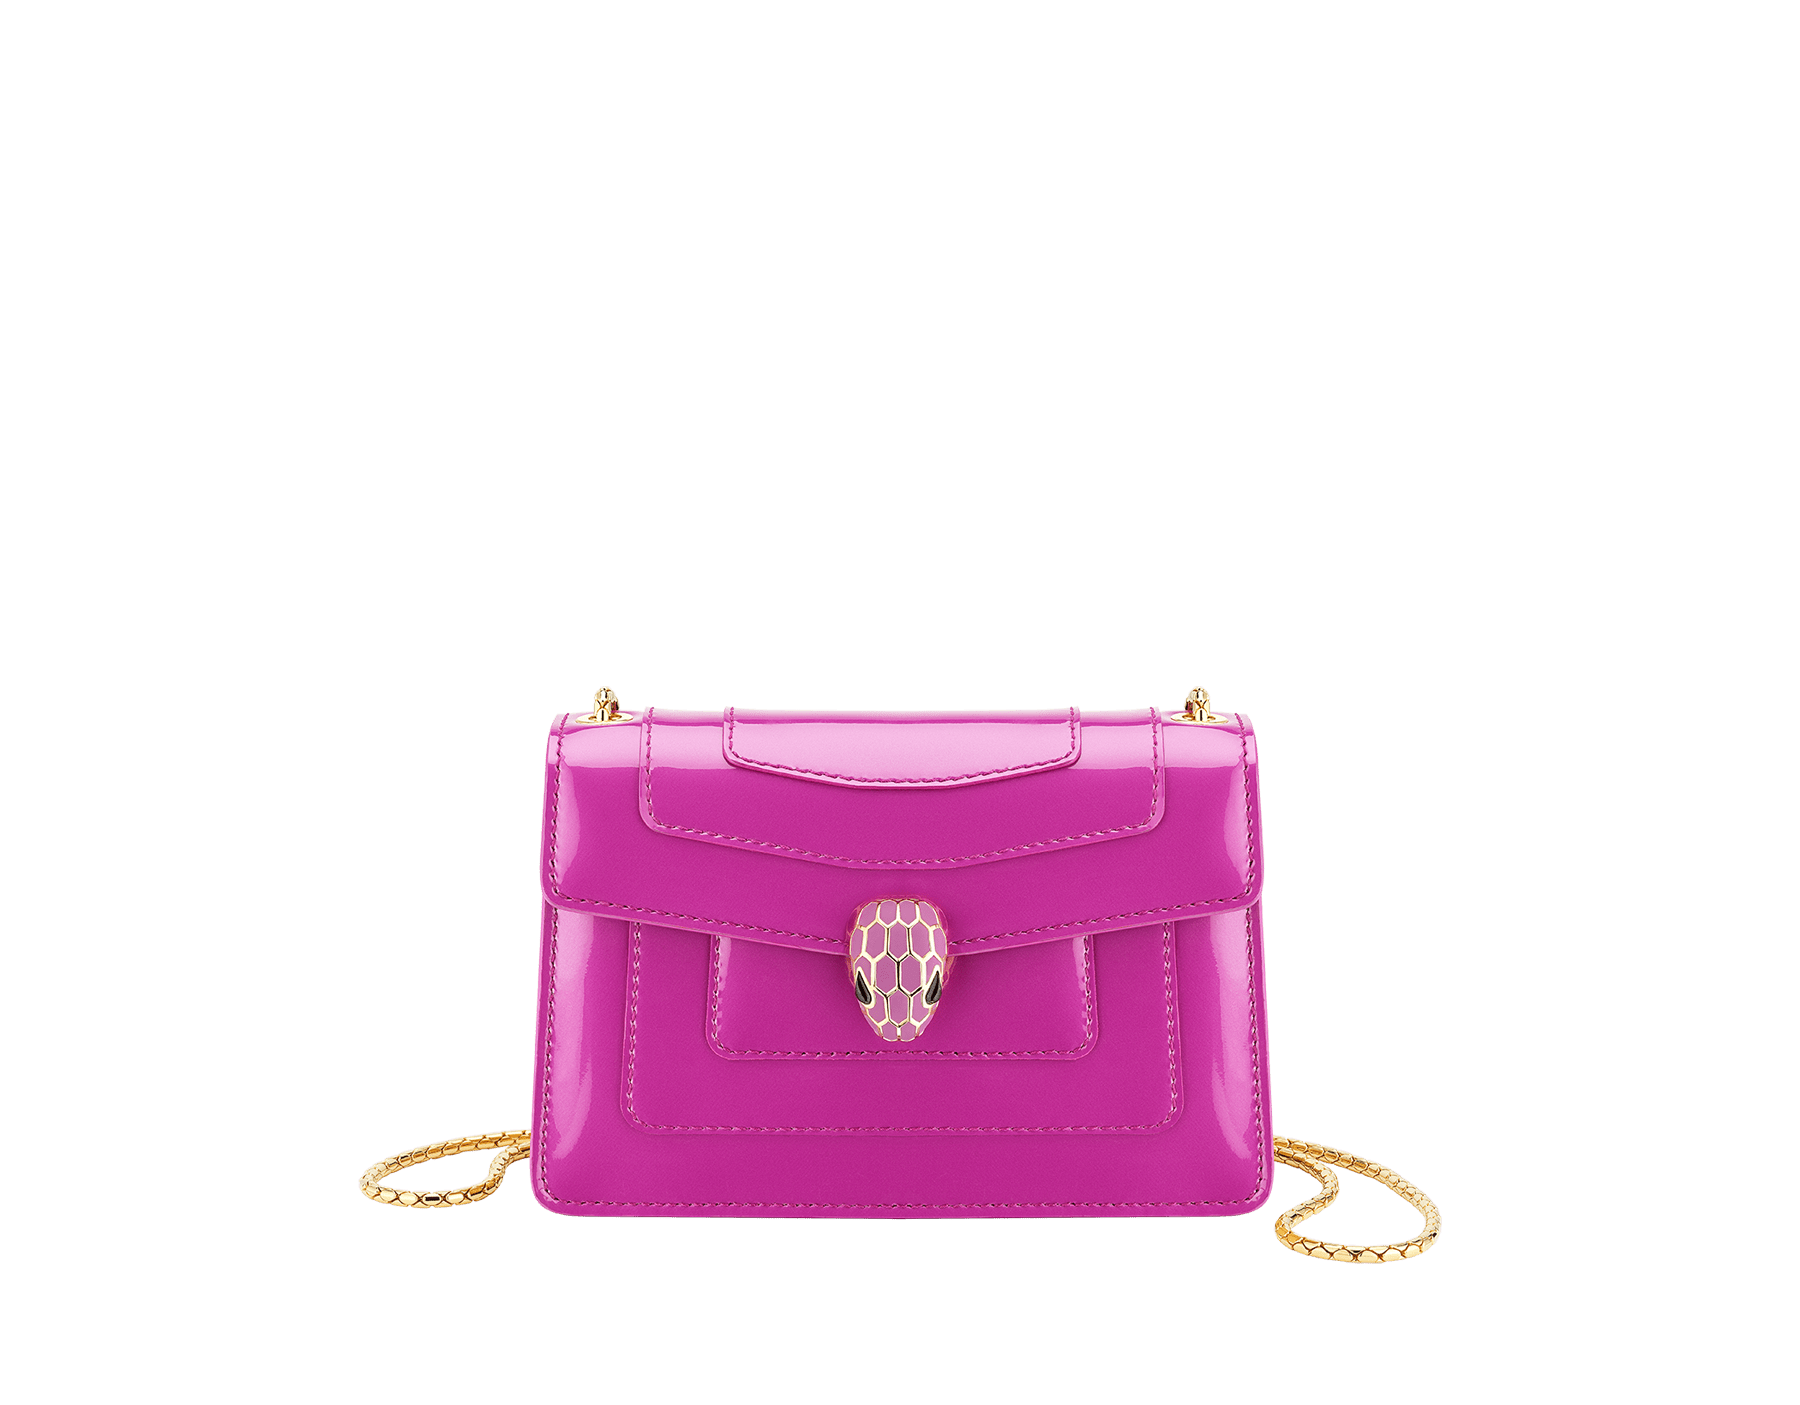 """Serpenti Forever"" crossbody mini bag in Magenta Spinel purple with a varnished and pearled effect, and black gros grain internal lining. Brass gold plated snakehead closure in full matte Magenta Spinel purple enamel, with black onyx eyes. Chinese New Year Special Edition. 986-VCL image 1"